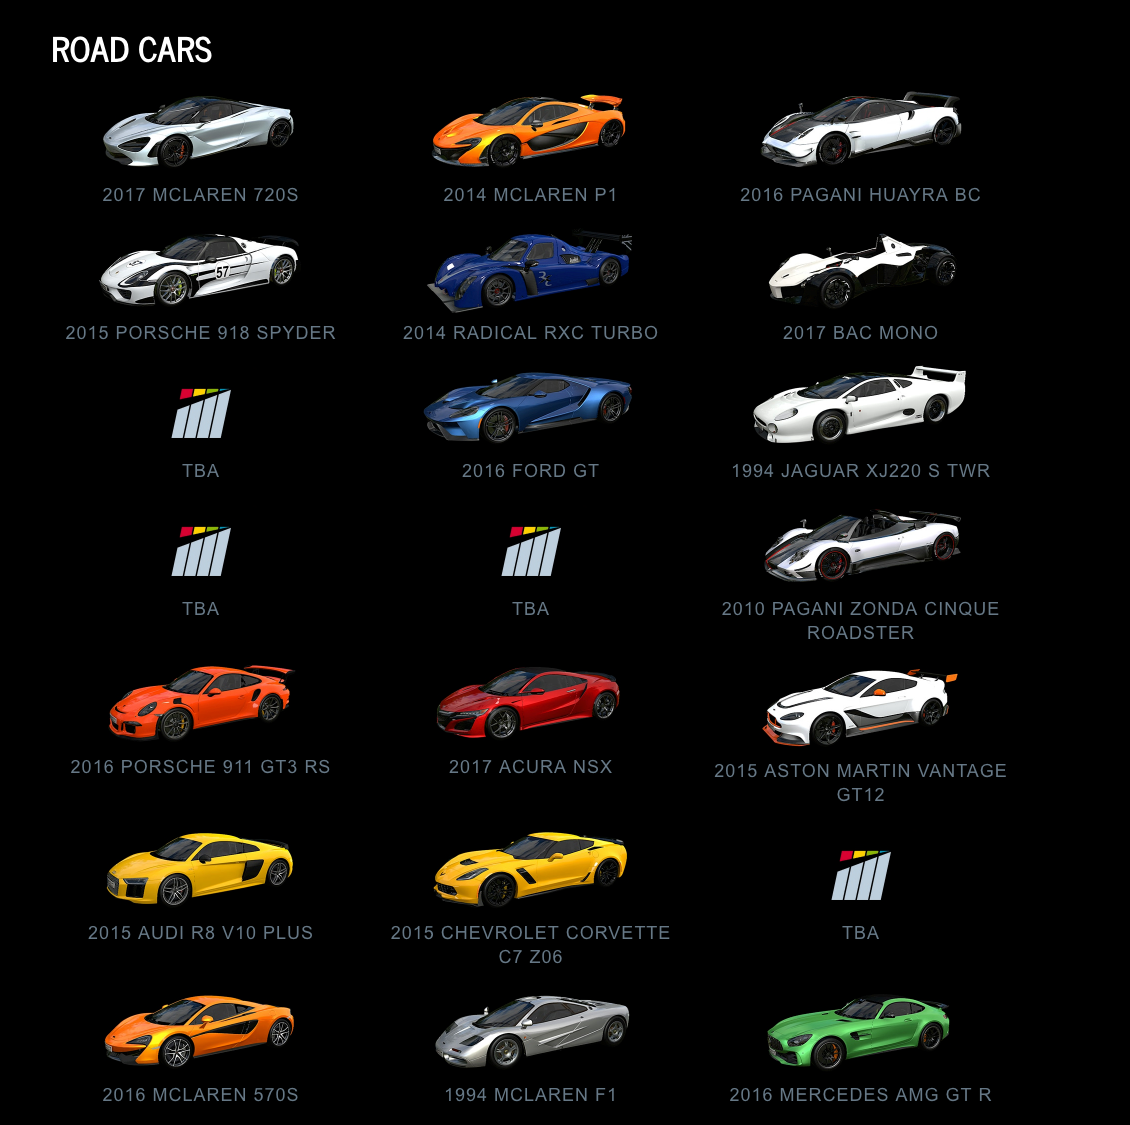 Project CARS 2 Road Cars 1 July